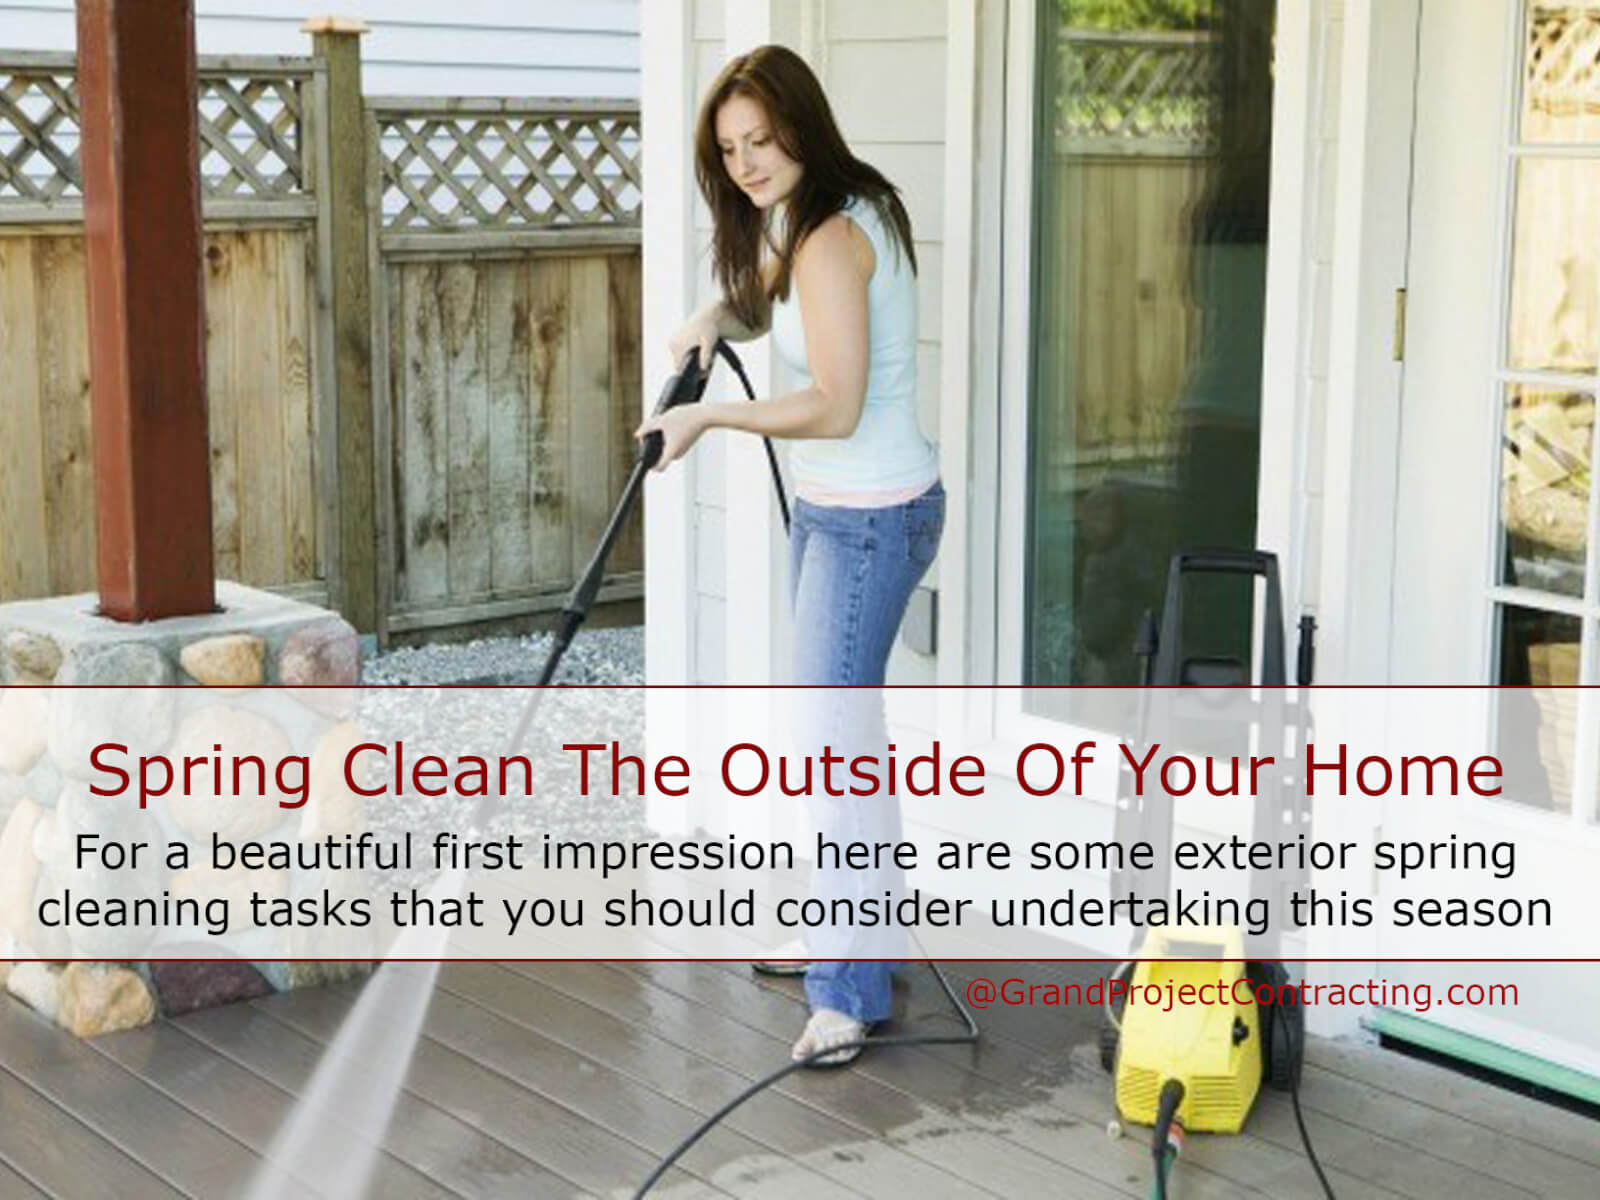 Spring Clean The Outside Of Your Home